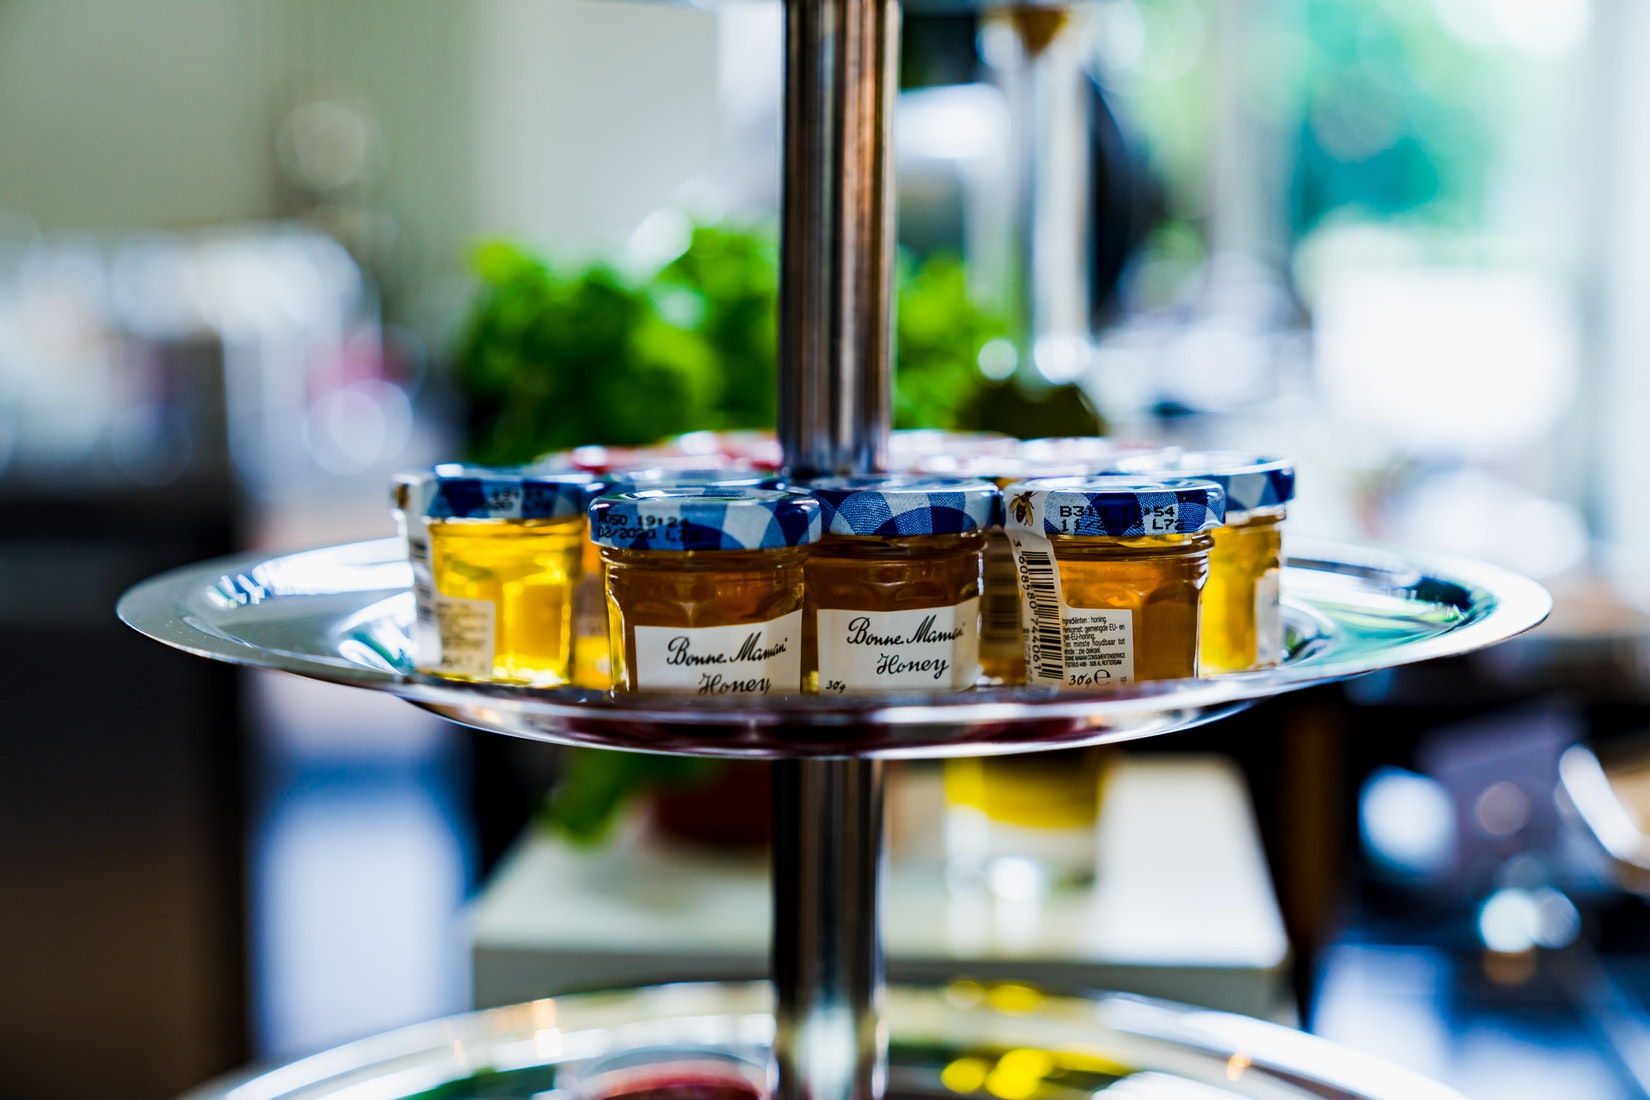 Tiny jars of honey at hotel breakfast